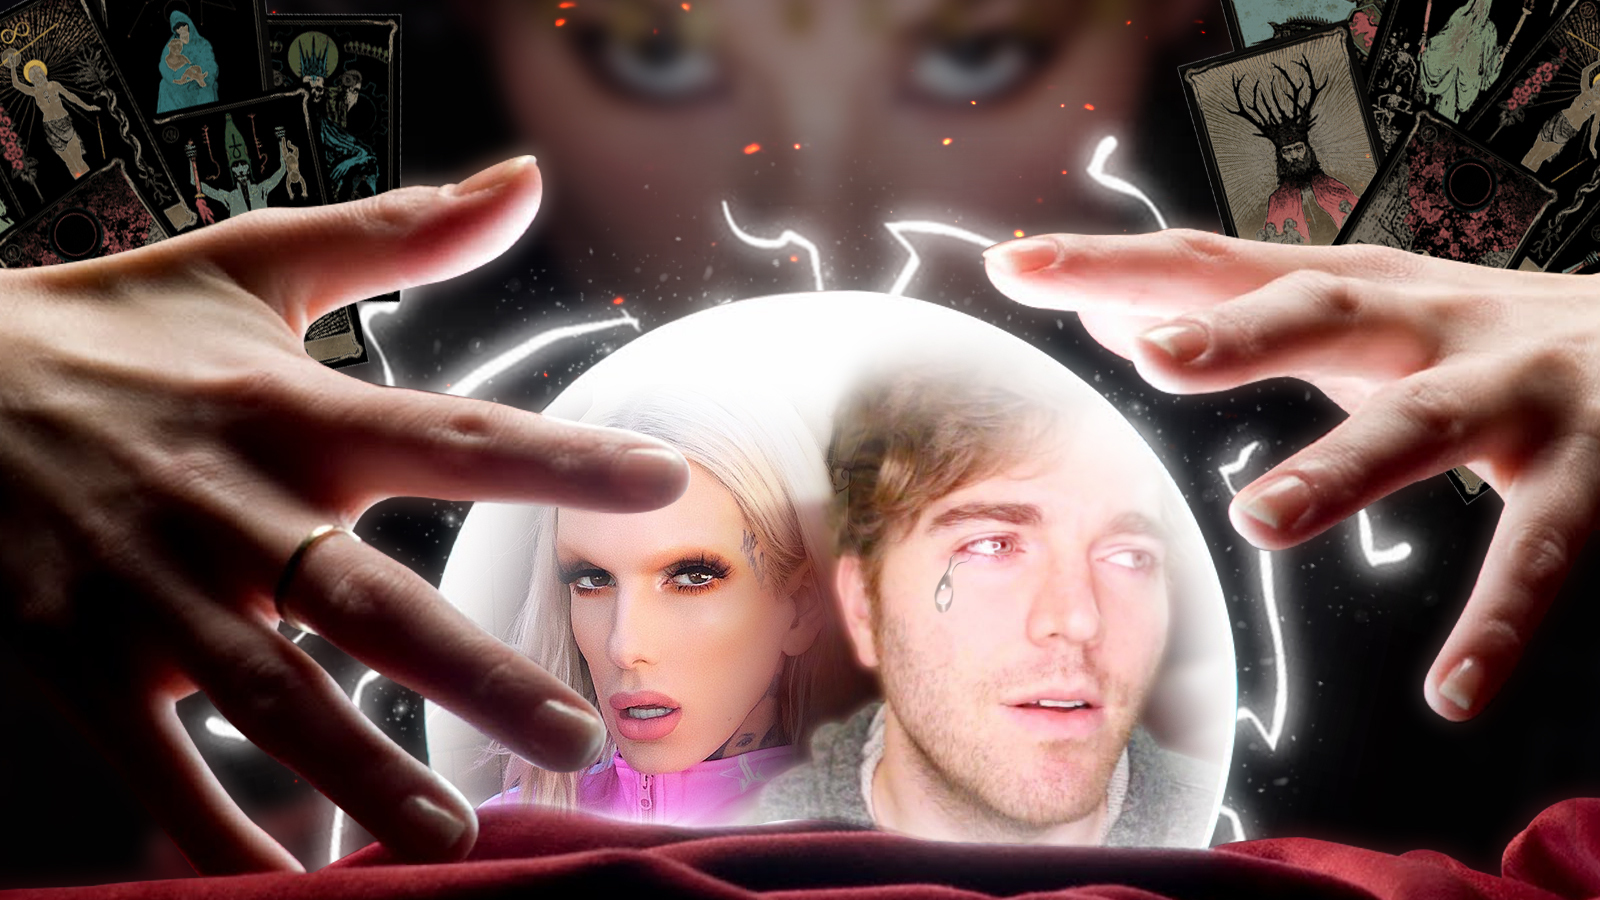 Tarot reader predicts downfall of Shane Dawson and Jeffree Star